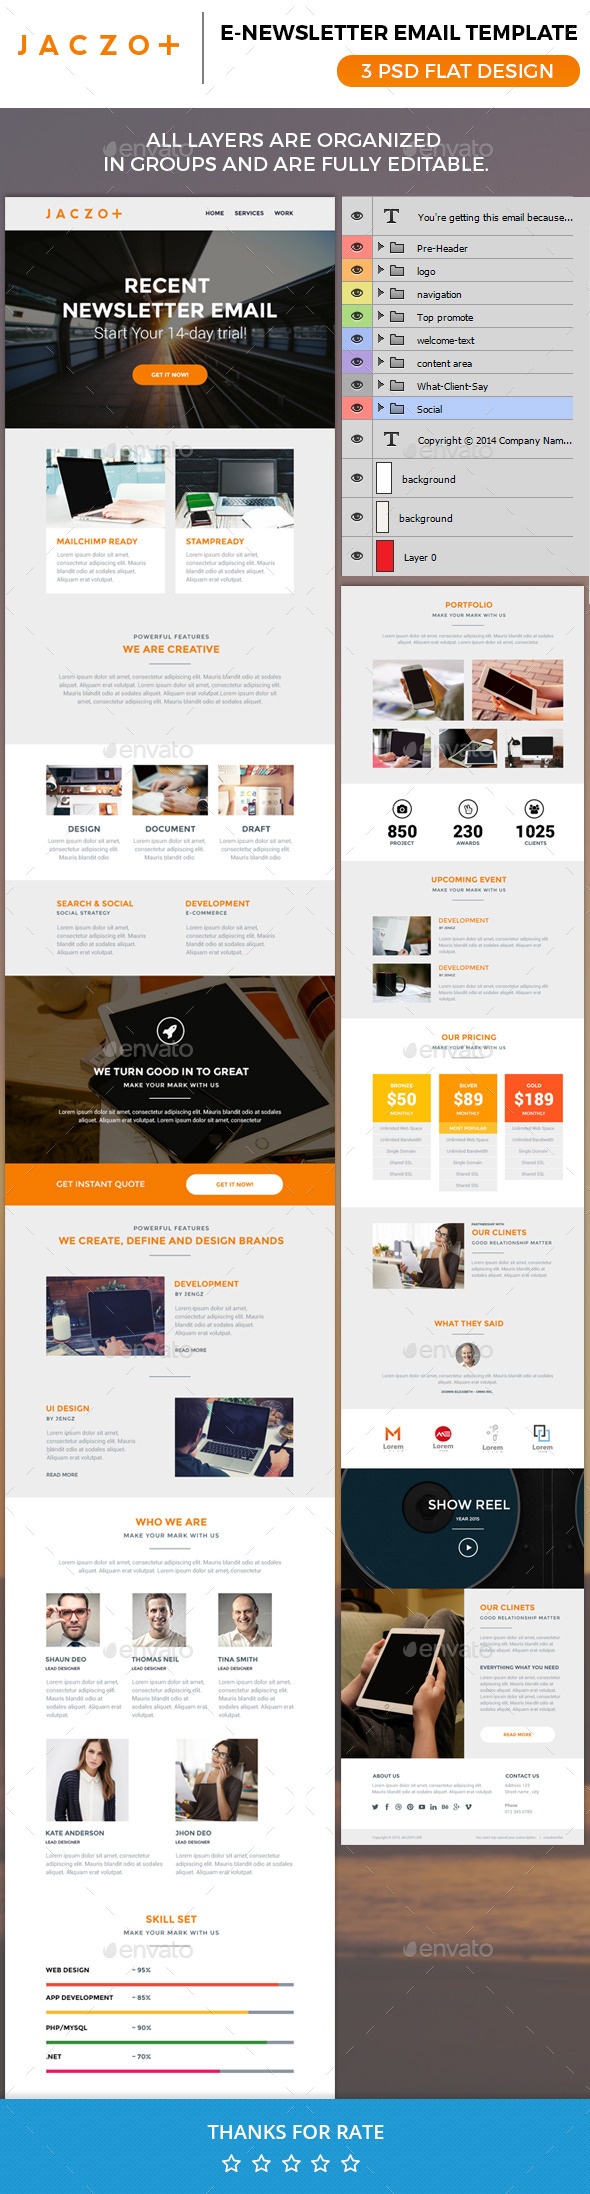 Jaczopluse Email Newsletter Psd - E-newsletters Web Elements